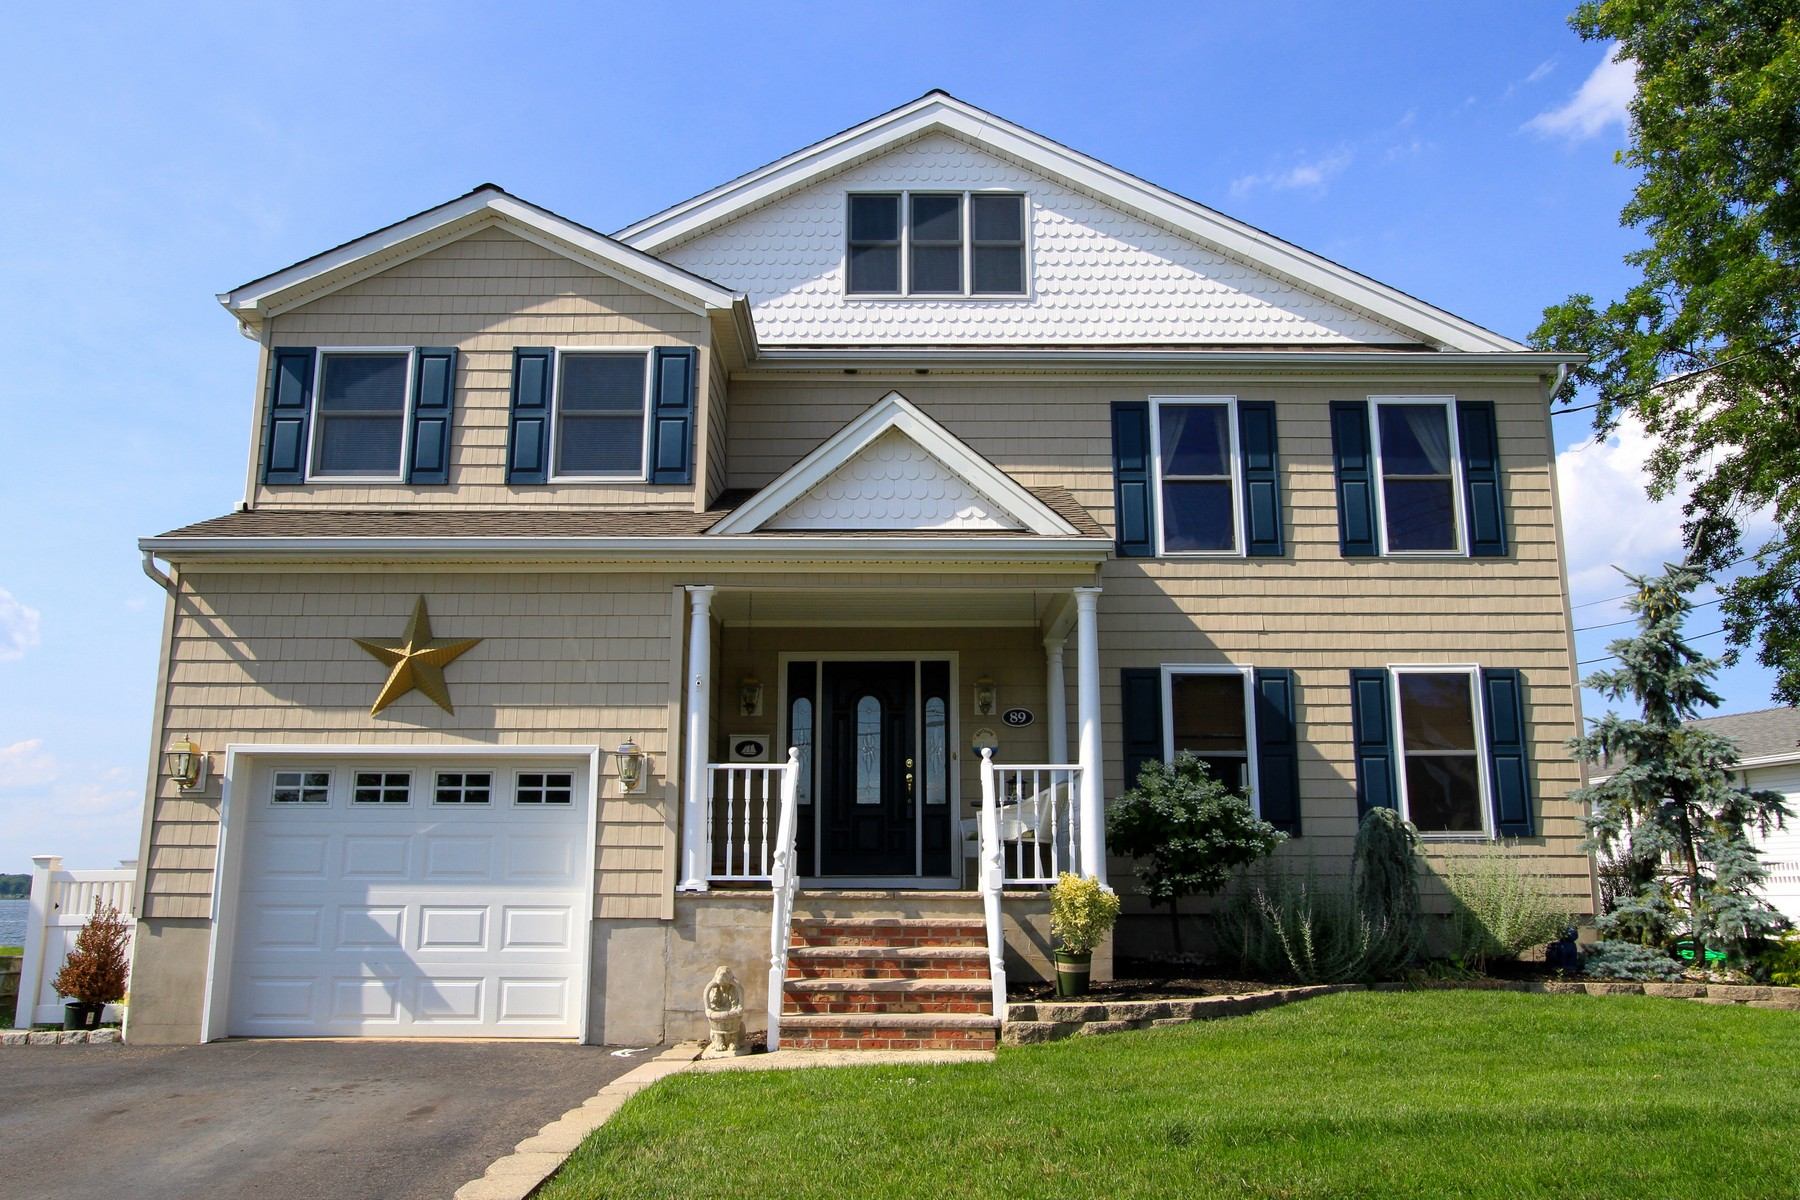 Single Family Home for Sale at Lifestyle on the Shrewsbury River 89 Cayuga Ave. Oceanport, New Jersey 07757 United States